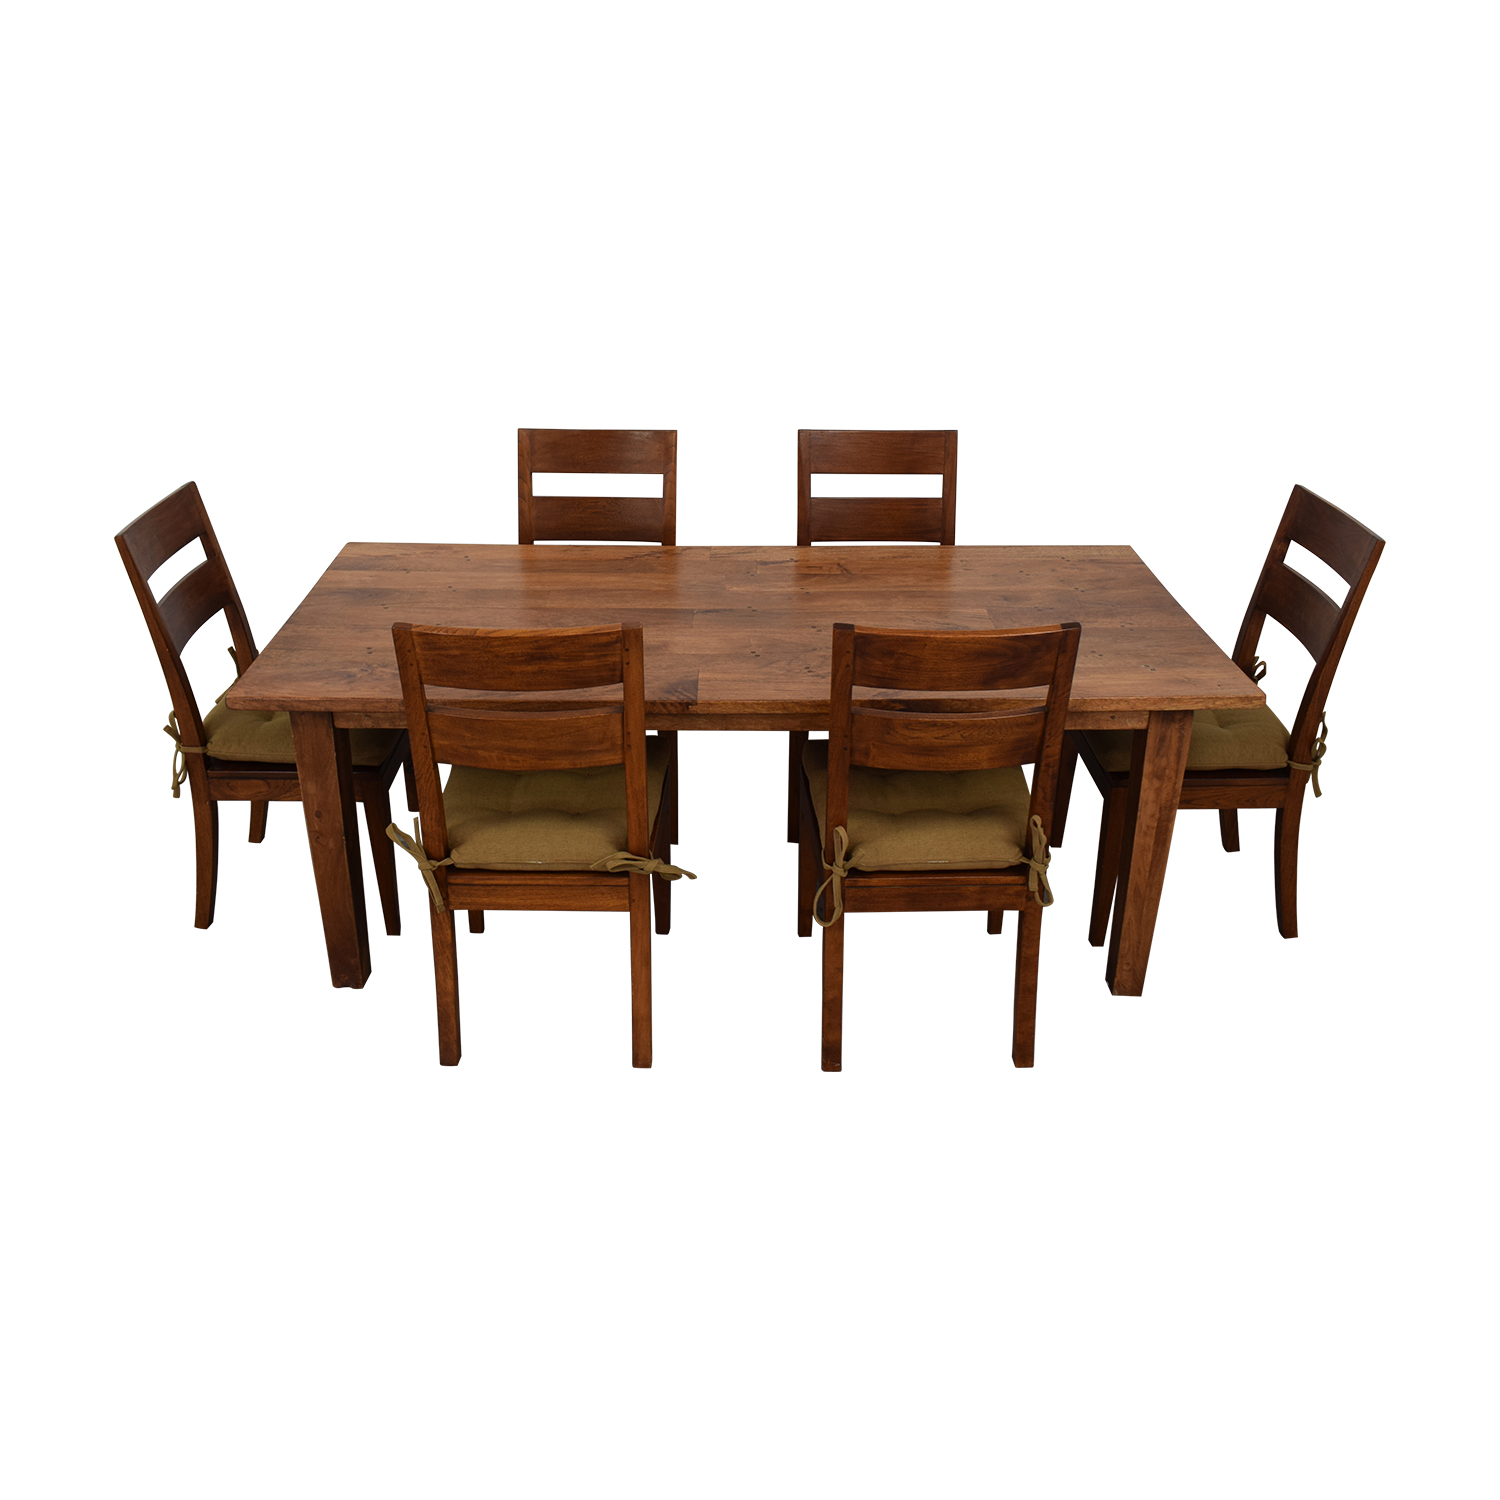 Crate & Barrel Basque Dining Table and Six Chairs sale